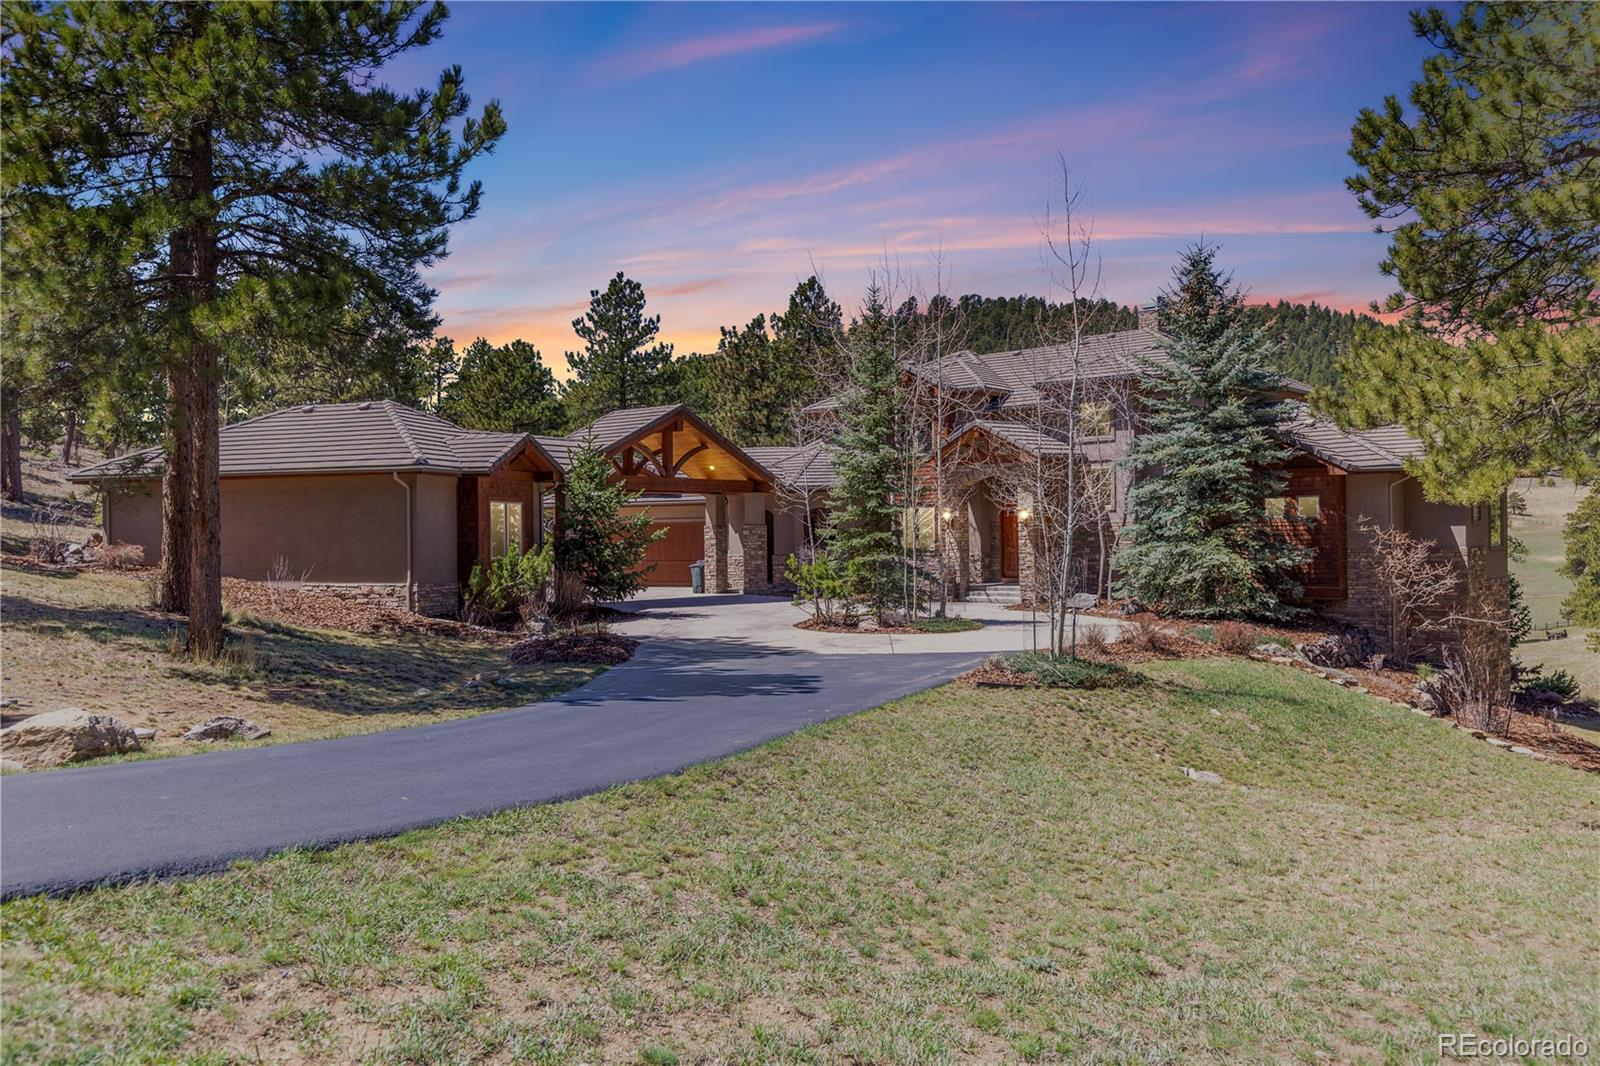 1265 Silver Rock Lane, Evergreen, CO 80439 - Evergreen, CO real estate listing